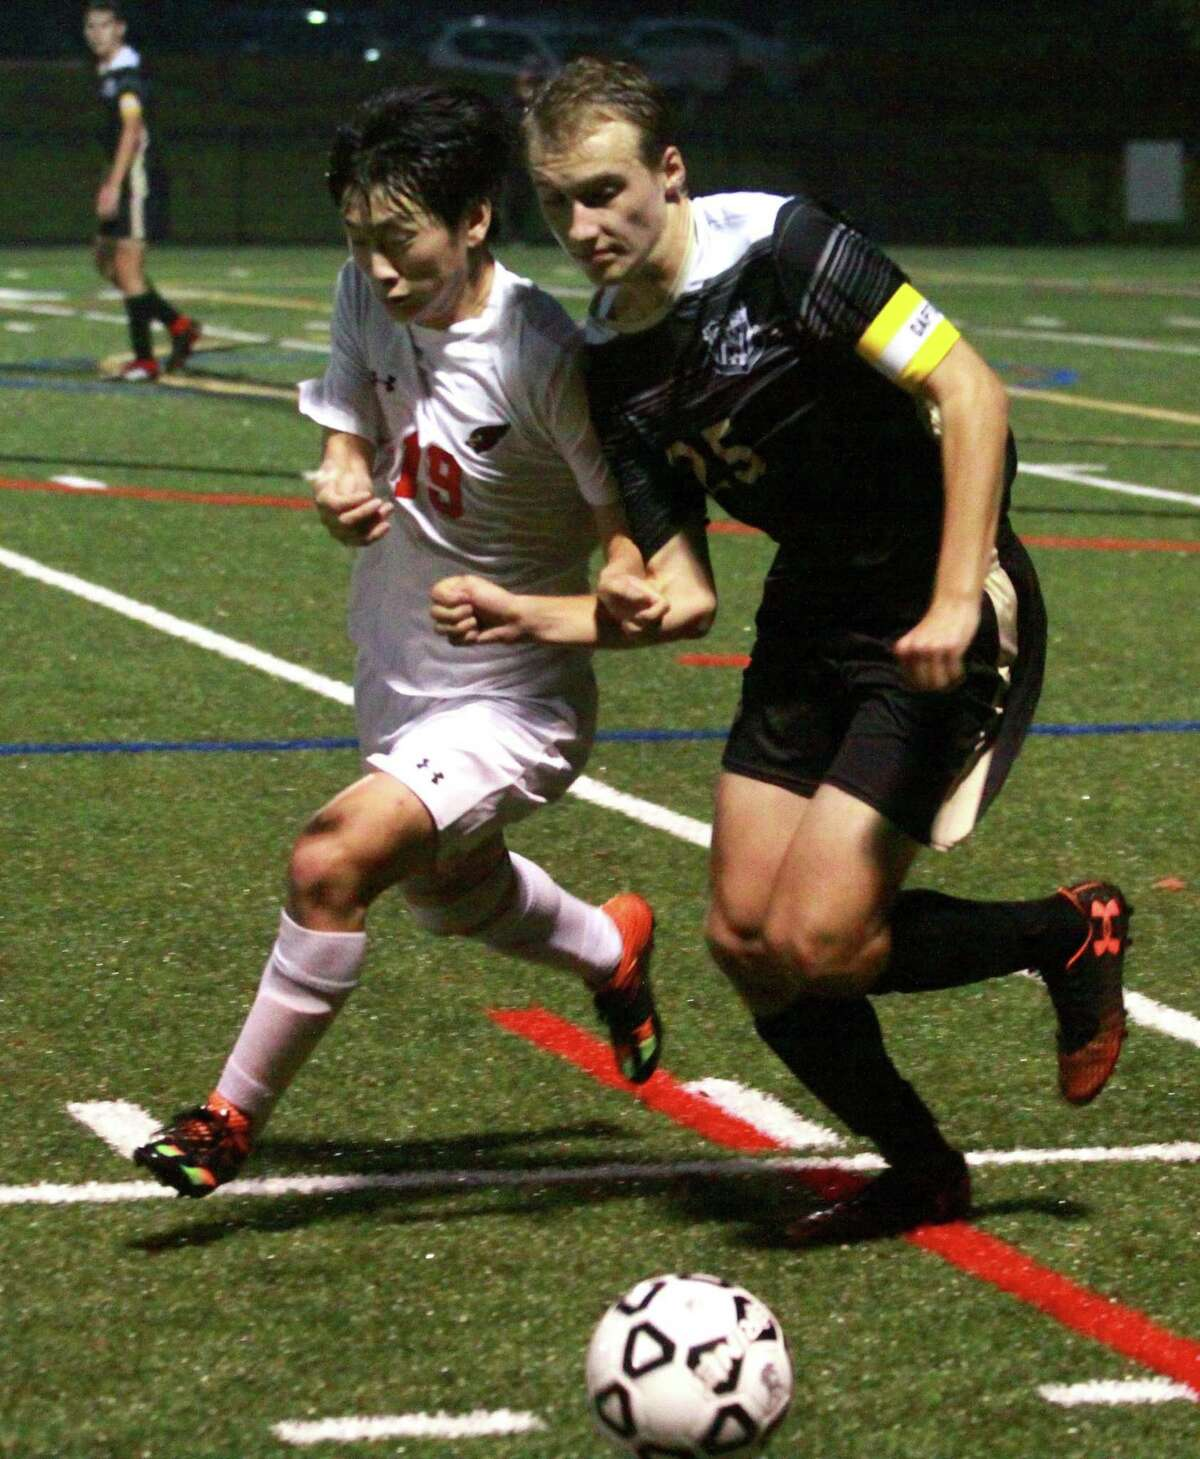 Greenwich's Woojin Kwak, left, and Trumbull's John Recker scramble for the ball during boys soccer action in Trumbull, Conn., on Thursday Oct. 4, 2018.